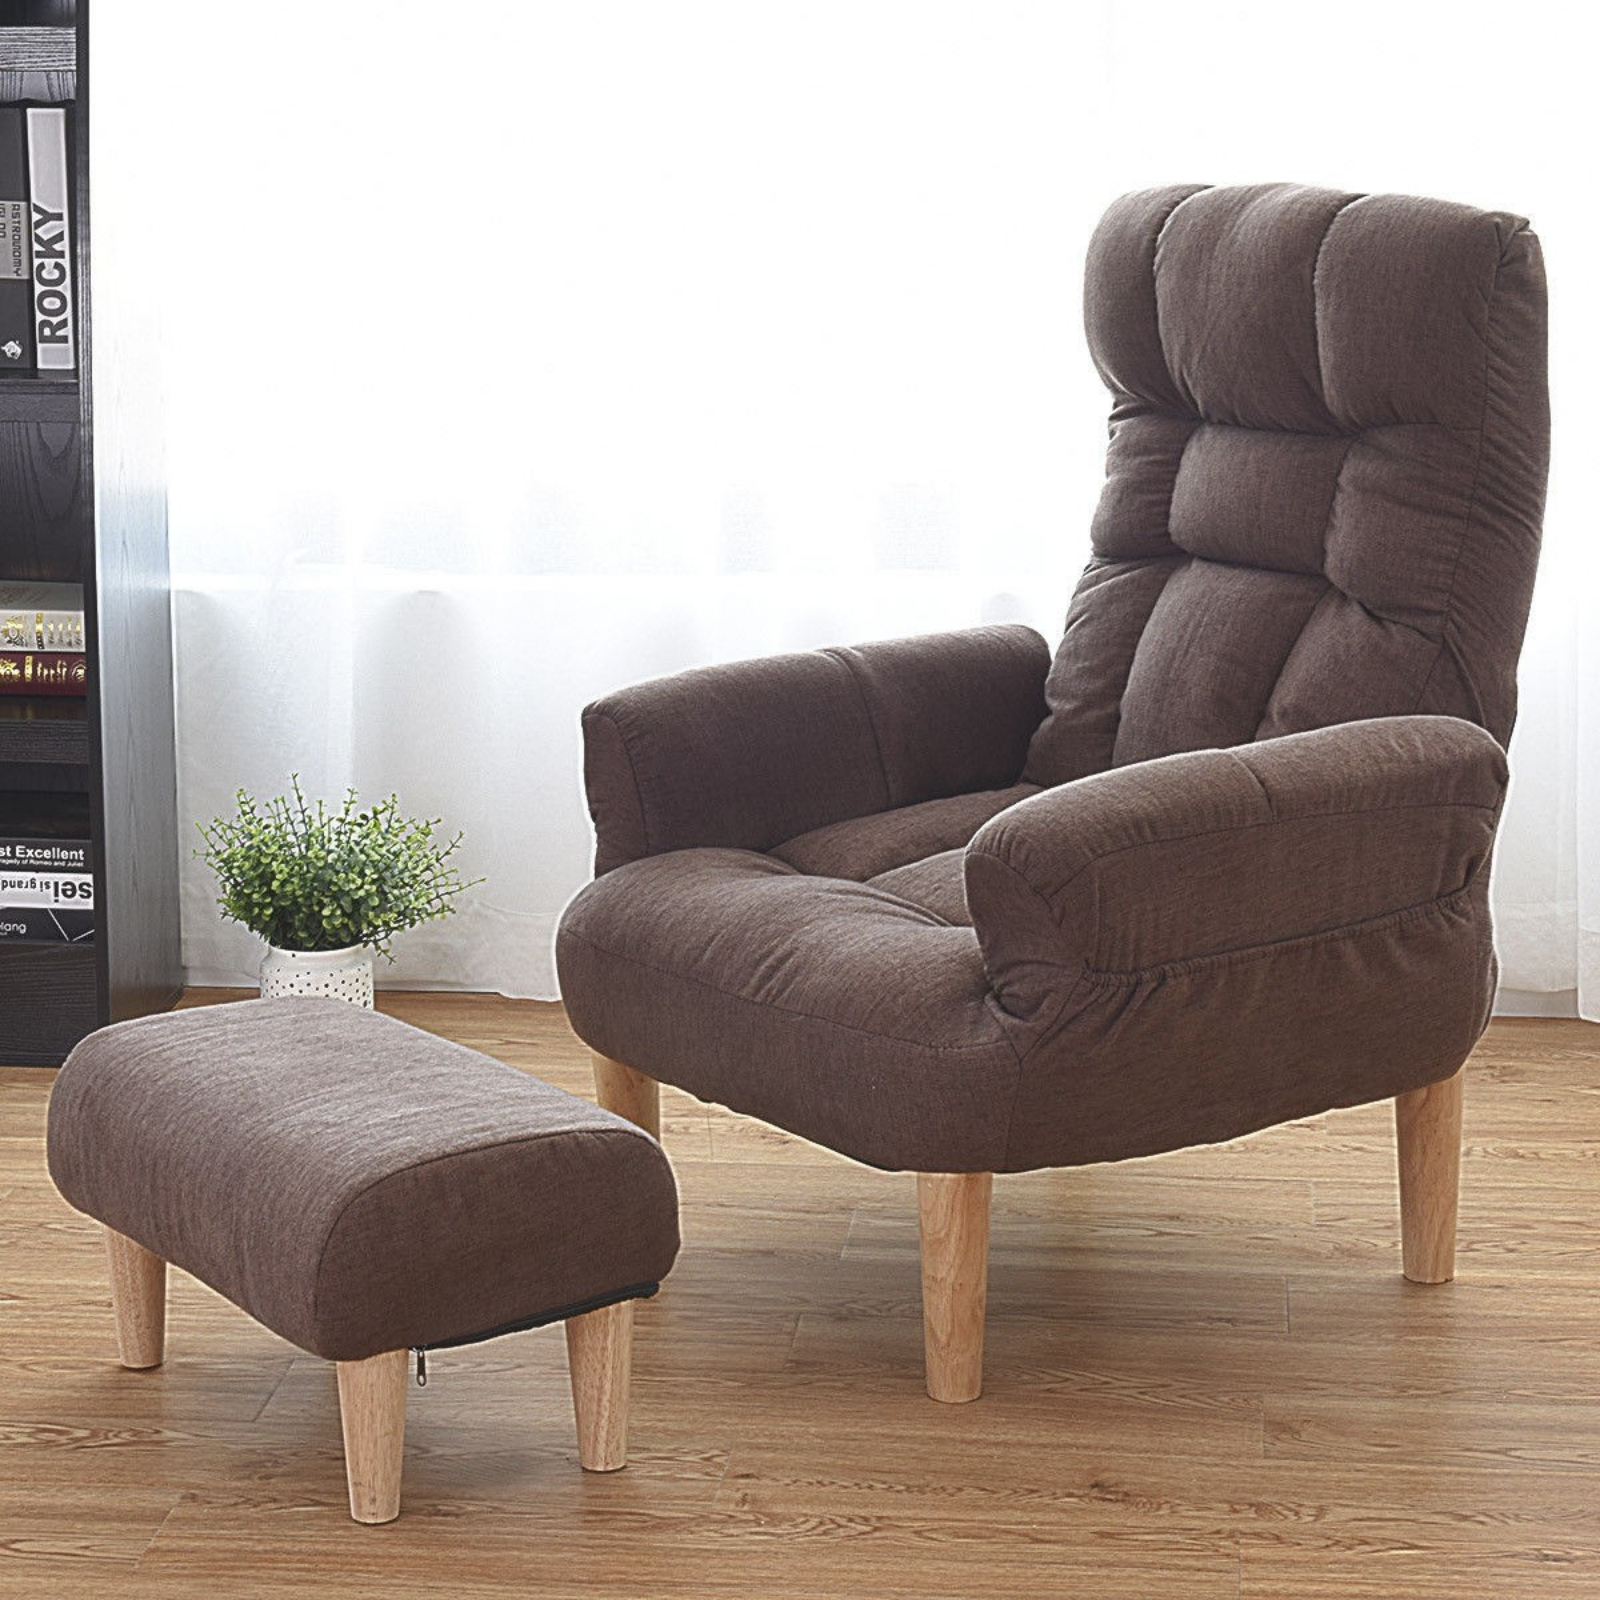 Recliner Lounge Chair Lazy Sofa Chairs With Ottoman Seat